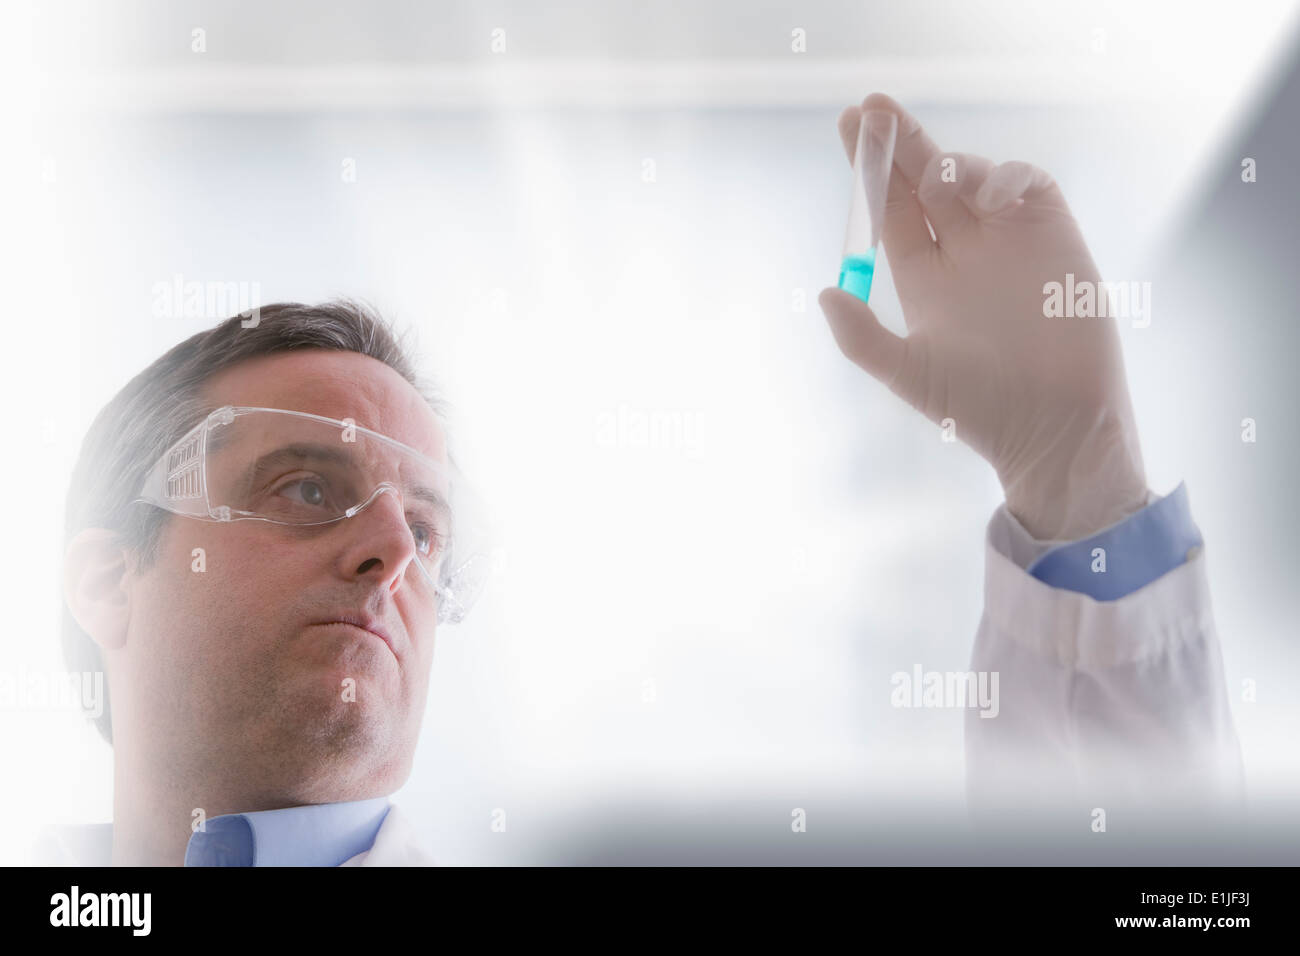 Scientist looking at test tube - Stock Image